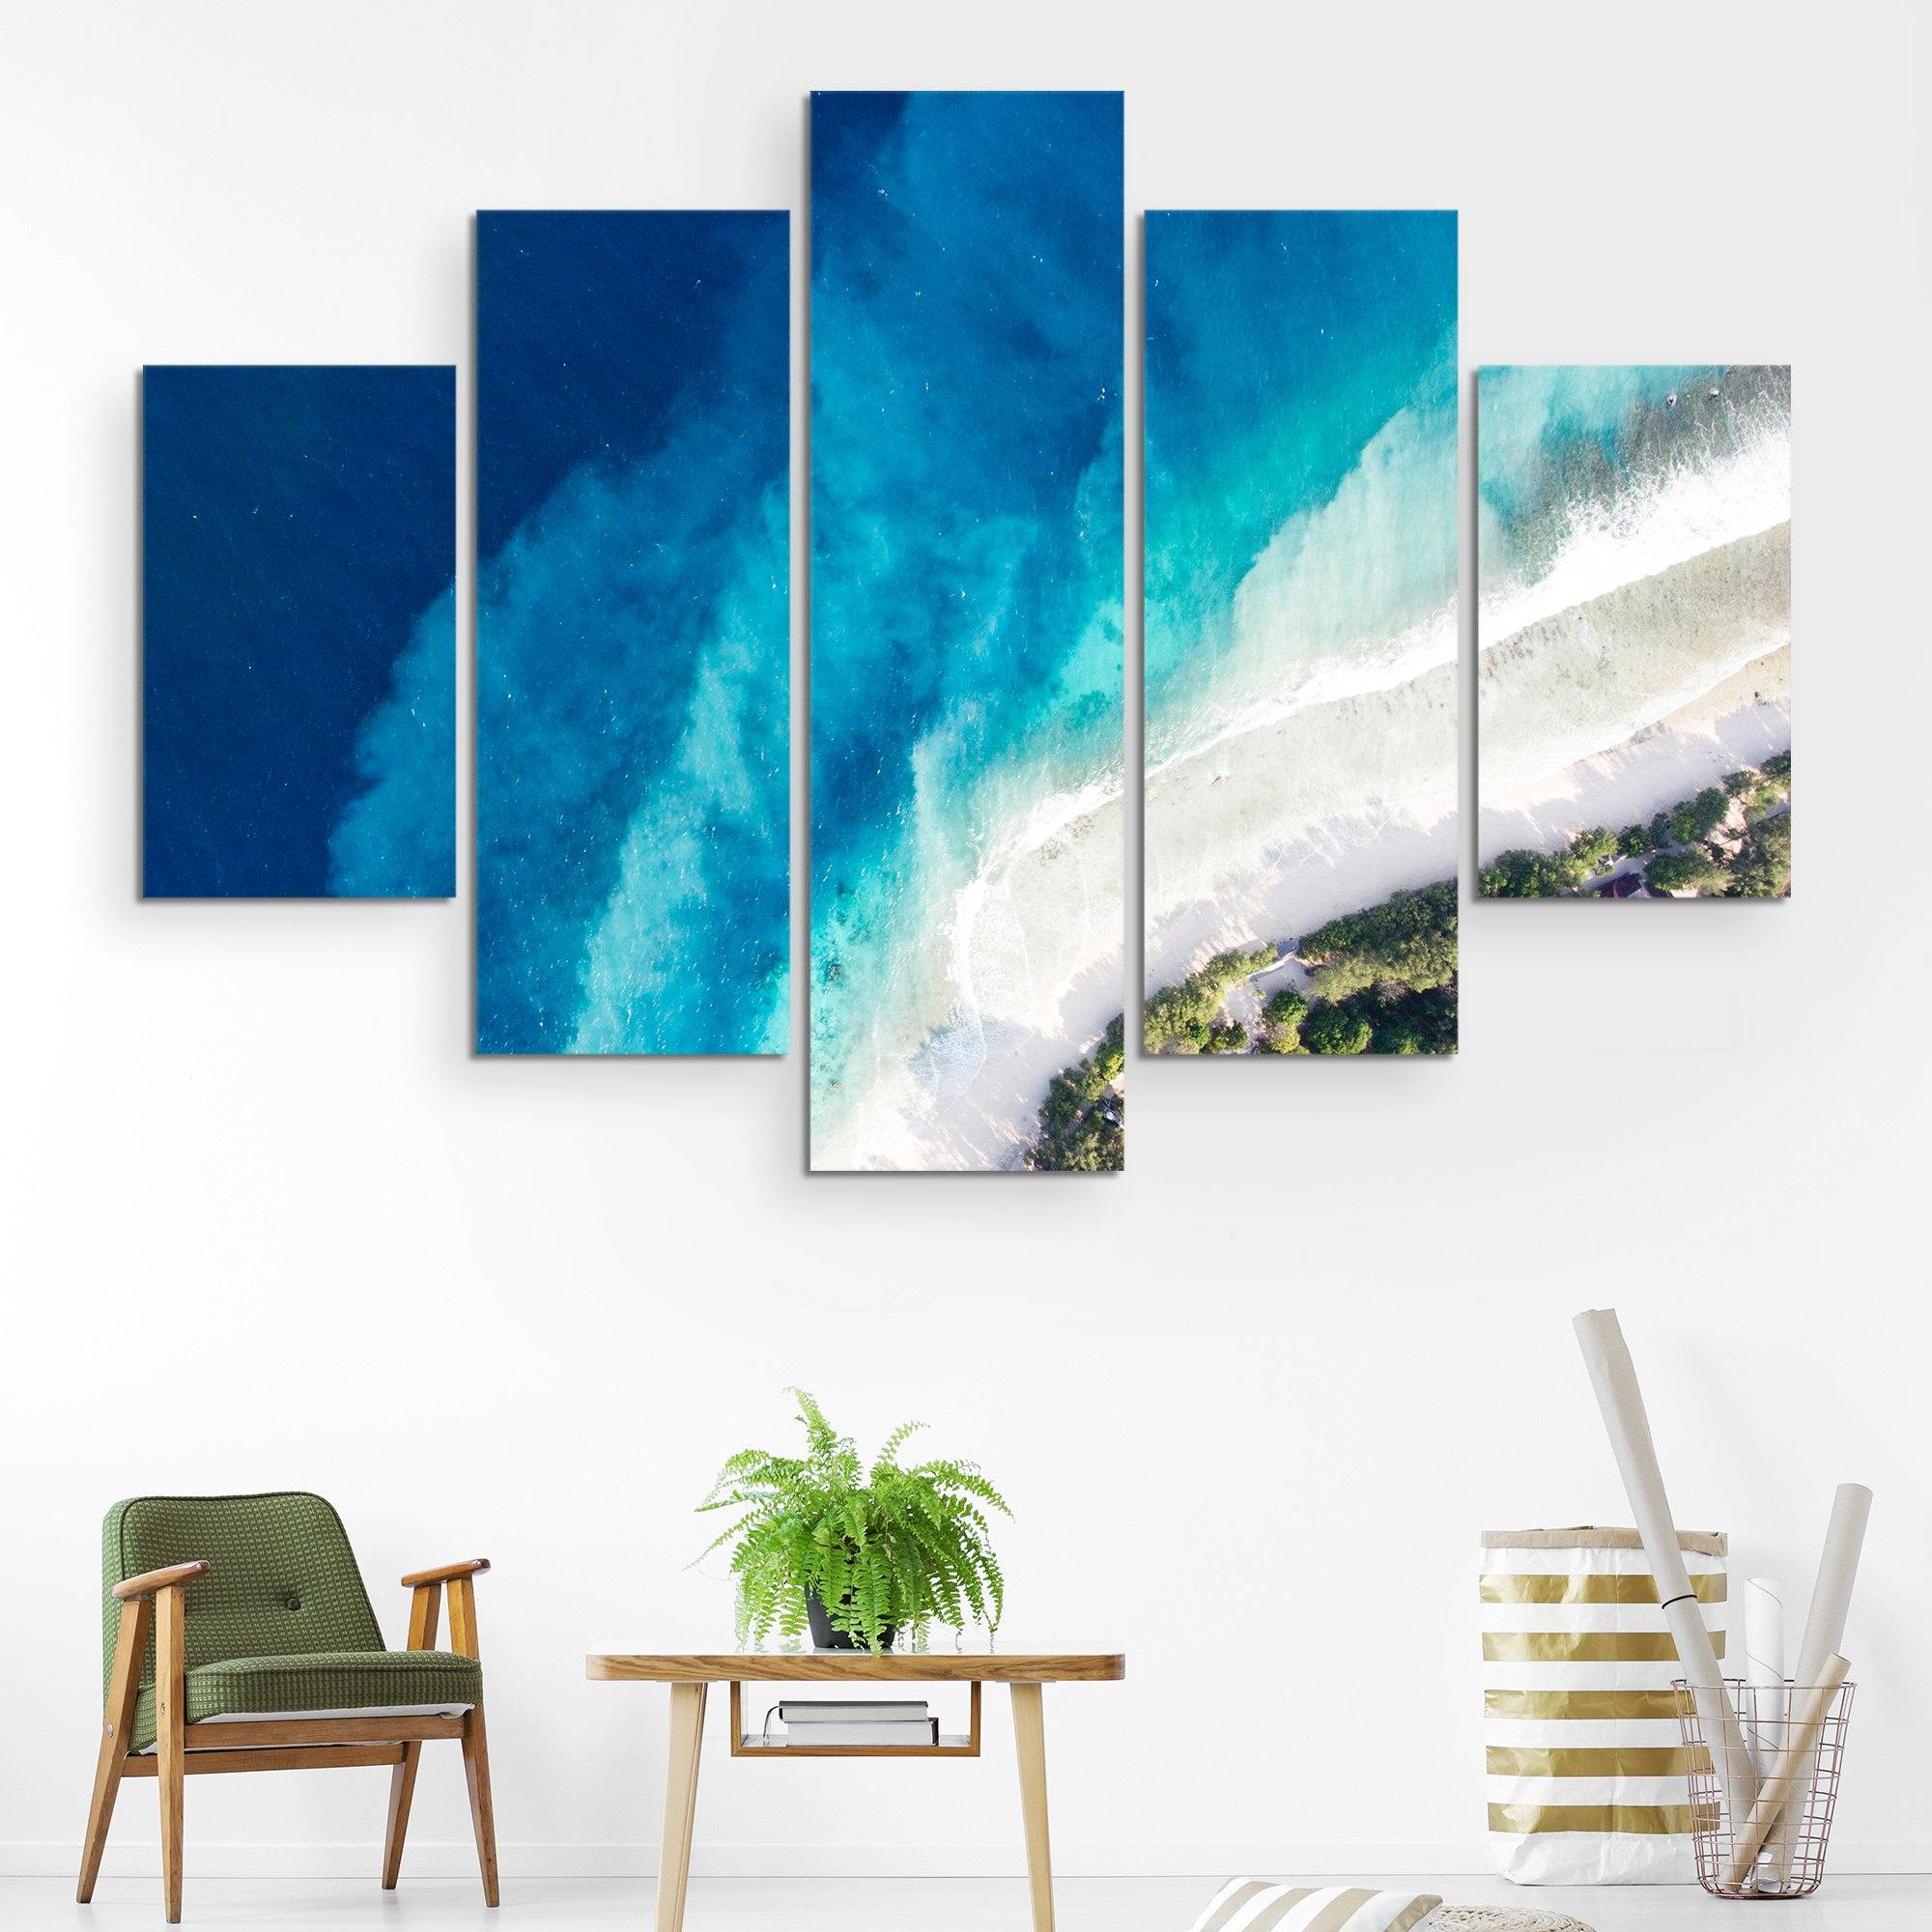 5 piece Top of the seabed wall art